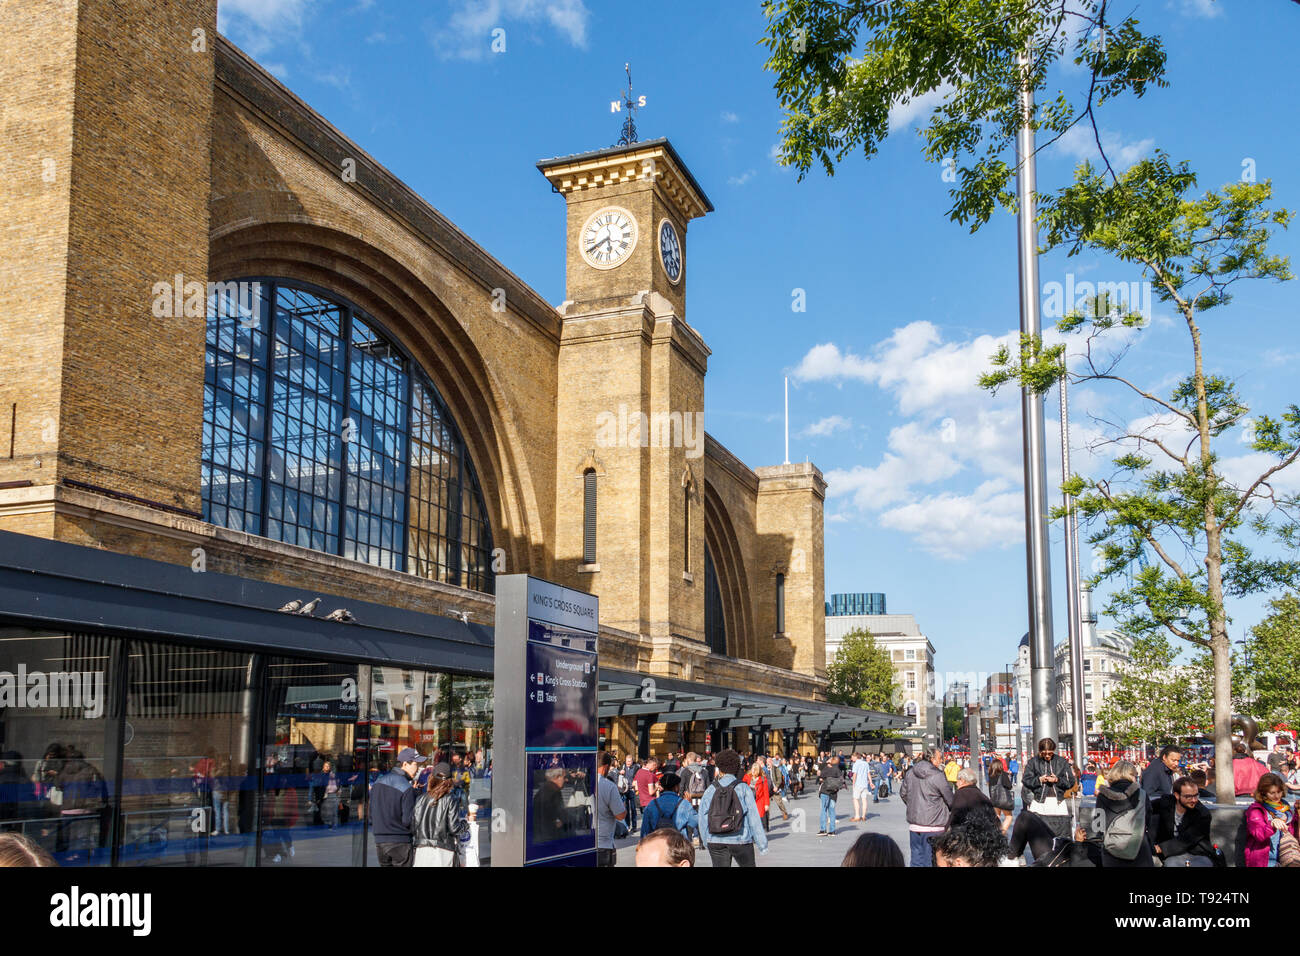 The façade and forecourt of King's Cross Station and clock tower, London, UK, 2019 - Stock Image